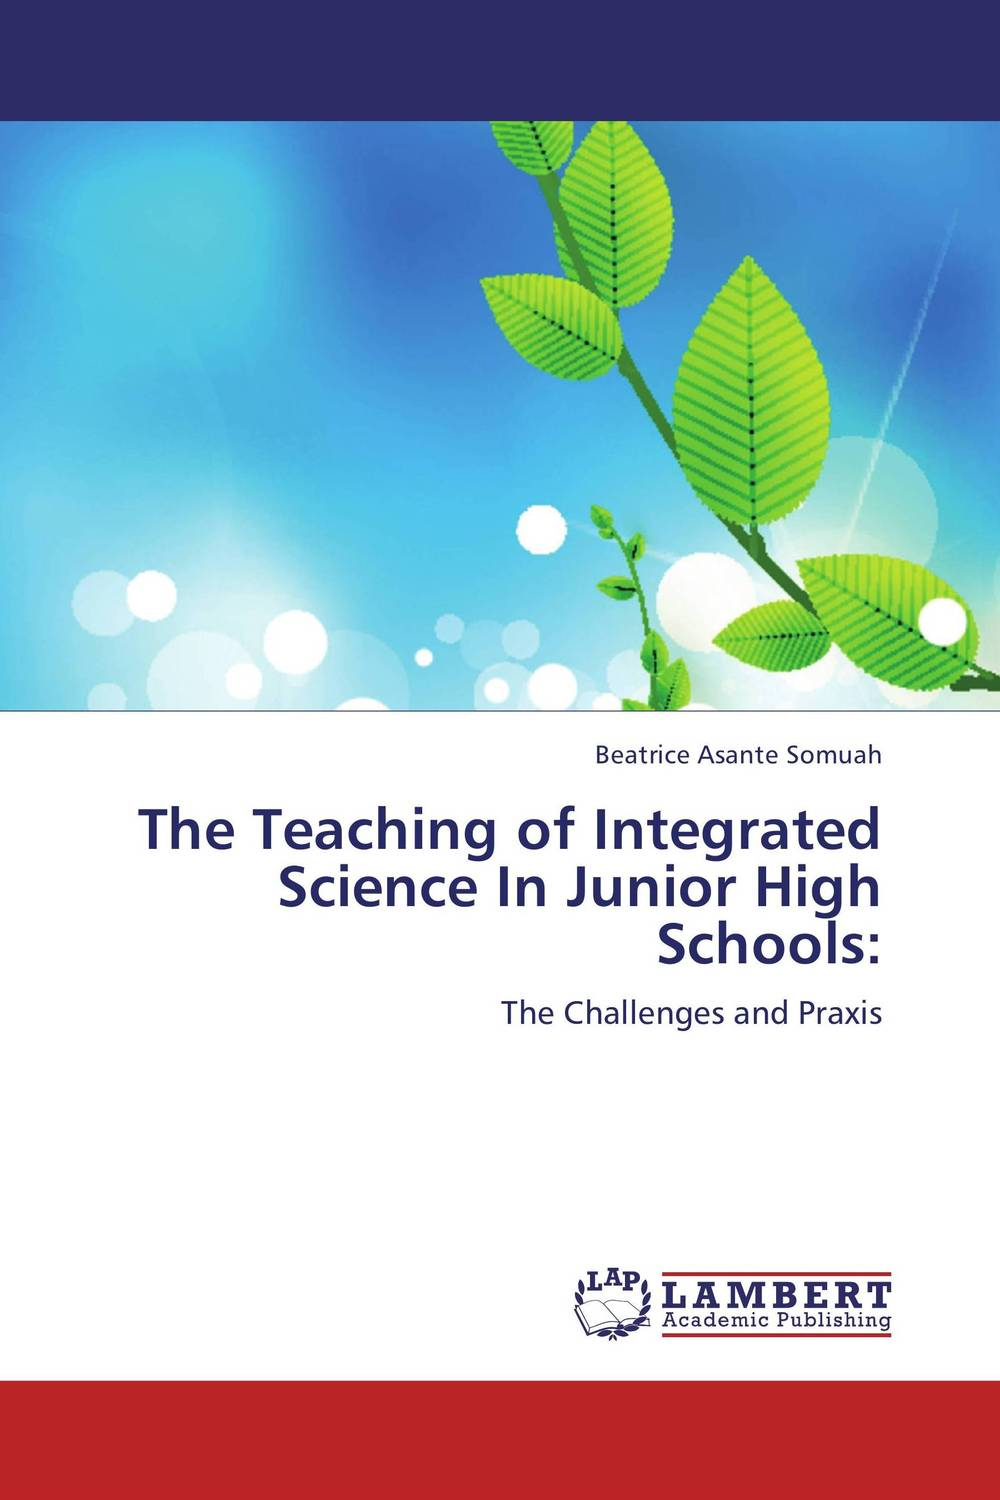 The Teaching of Integrated Science In Junior High Schools: